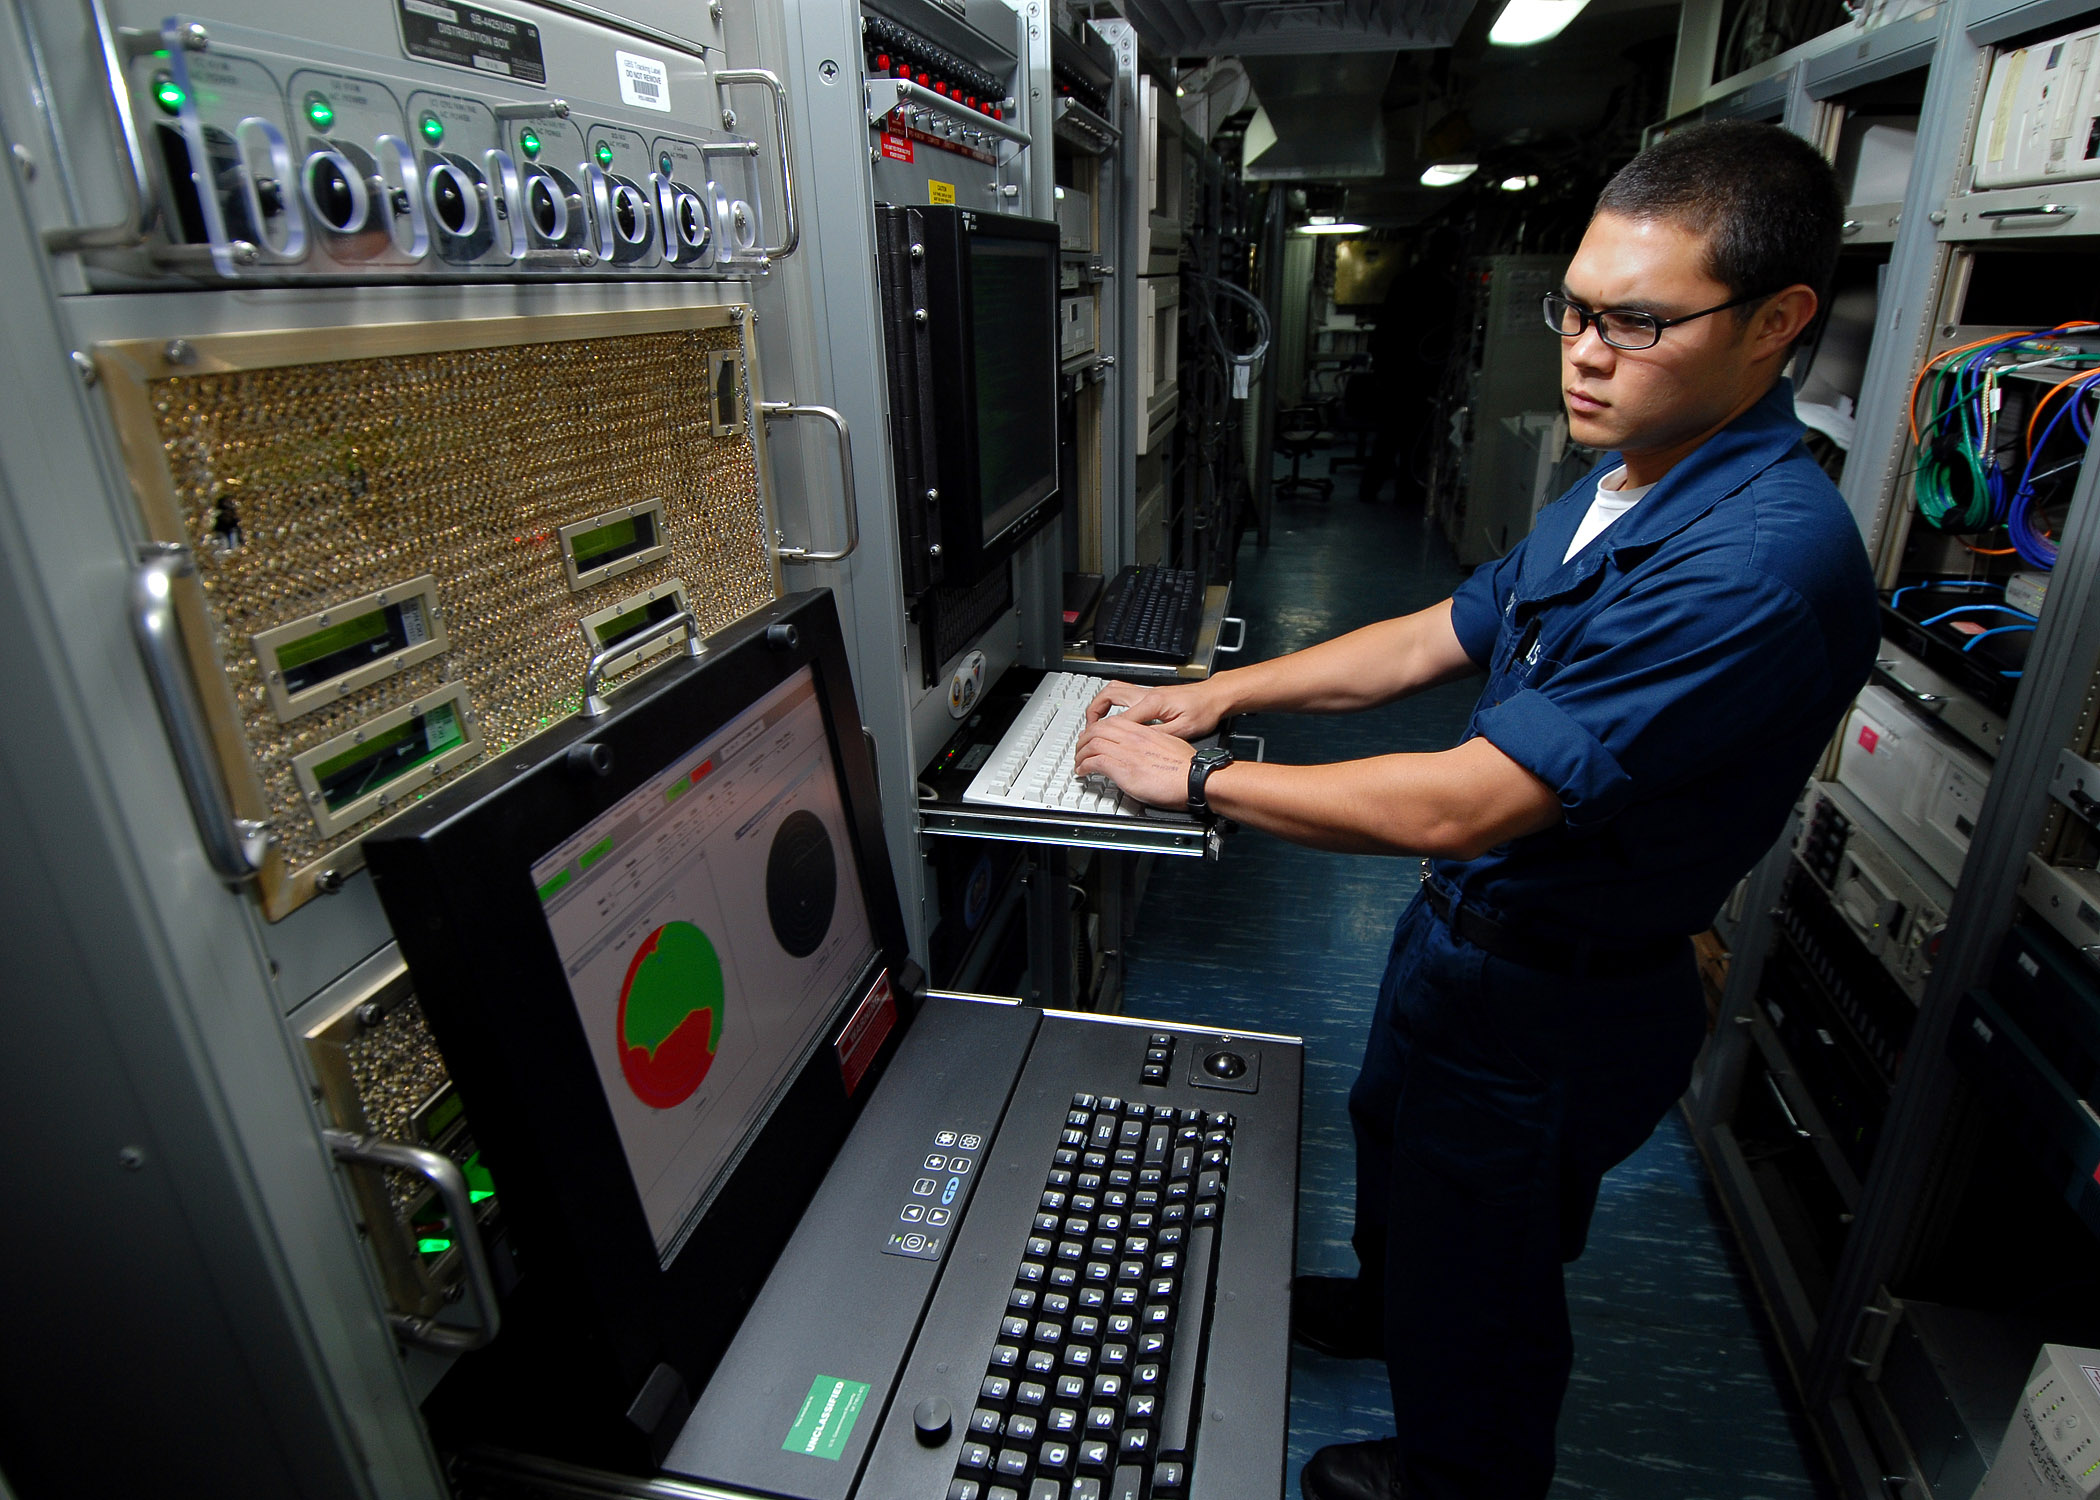 A Navy seaman monitors the ship's Automated Digital Networking System using general Digital rack mount displays